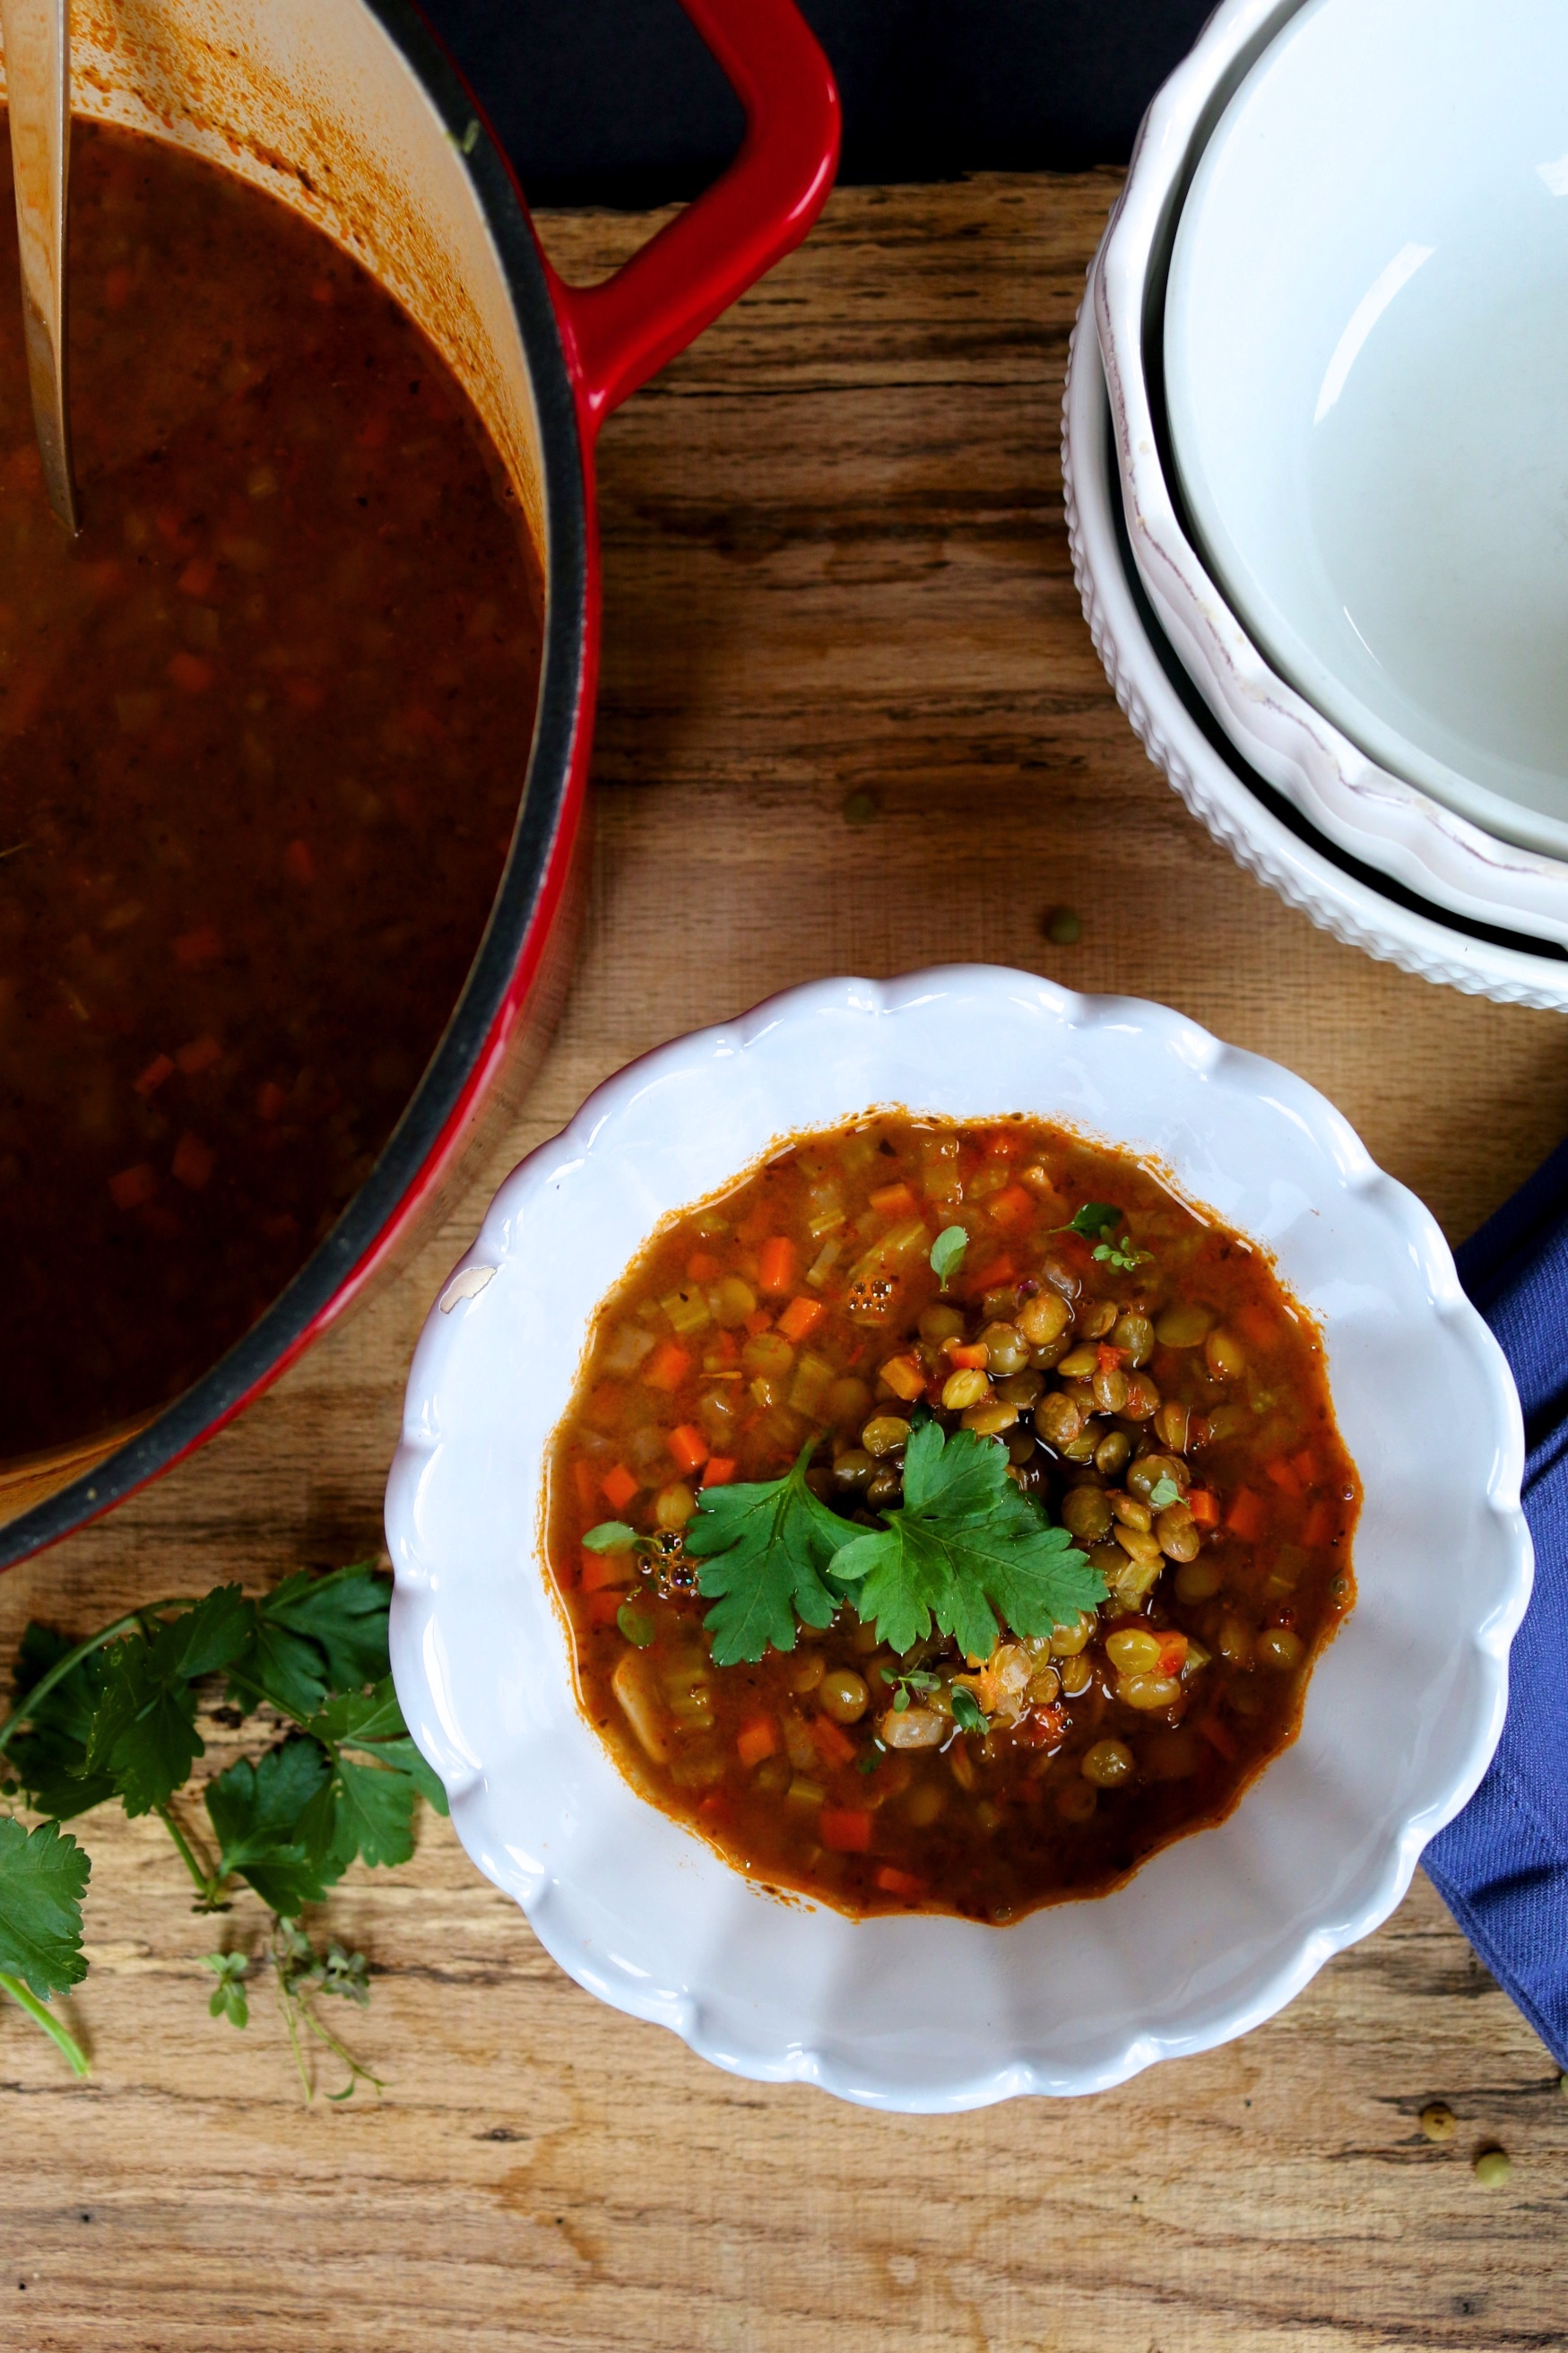 This recipe for Mexican lentil soup is amazing and very easy to prepare. It is full of flavor, vegetables, and benefits. This is one of my favorite soups. #vegan, #vegansoup, #veganlentilsoup